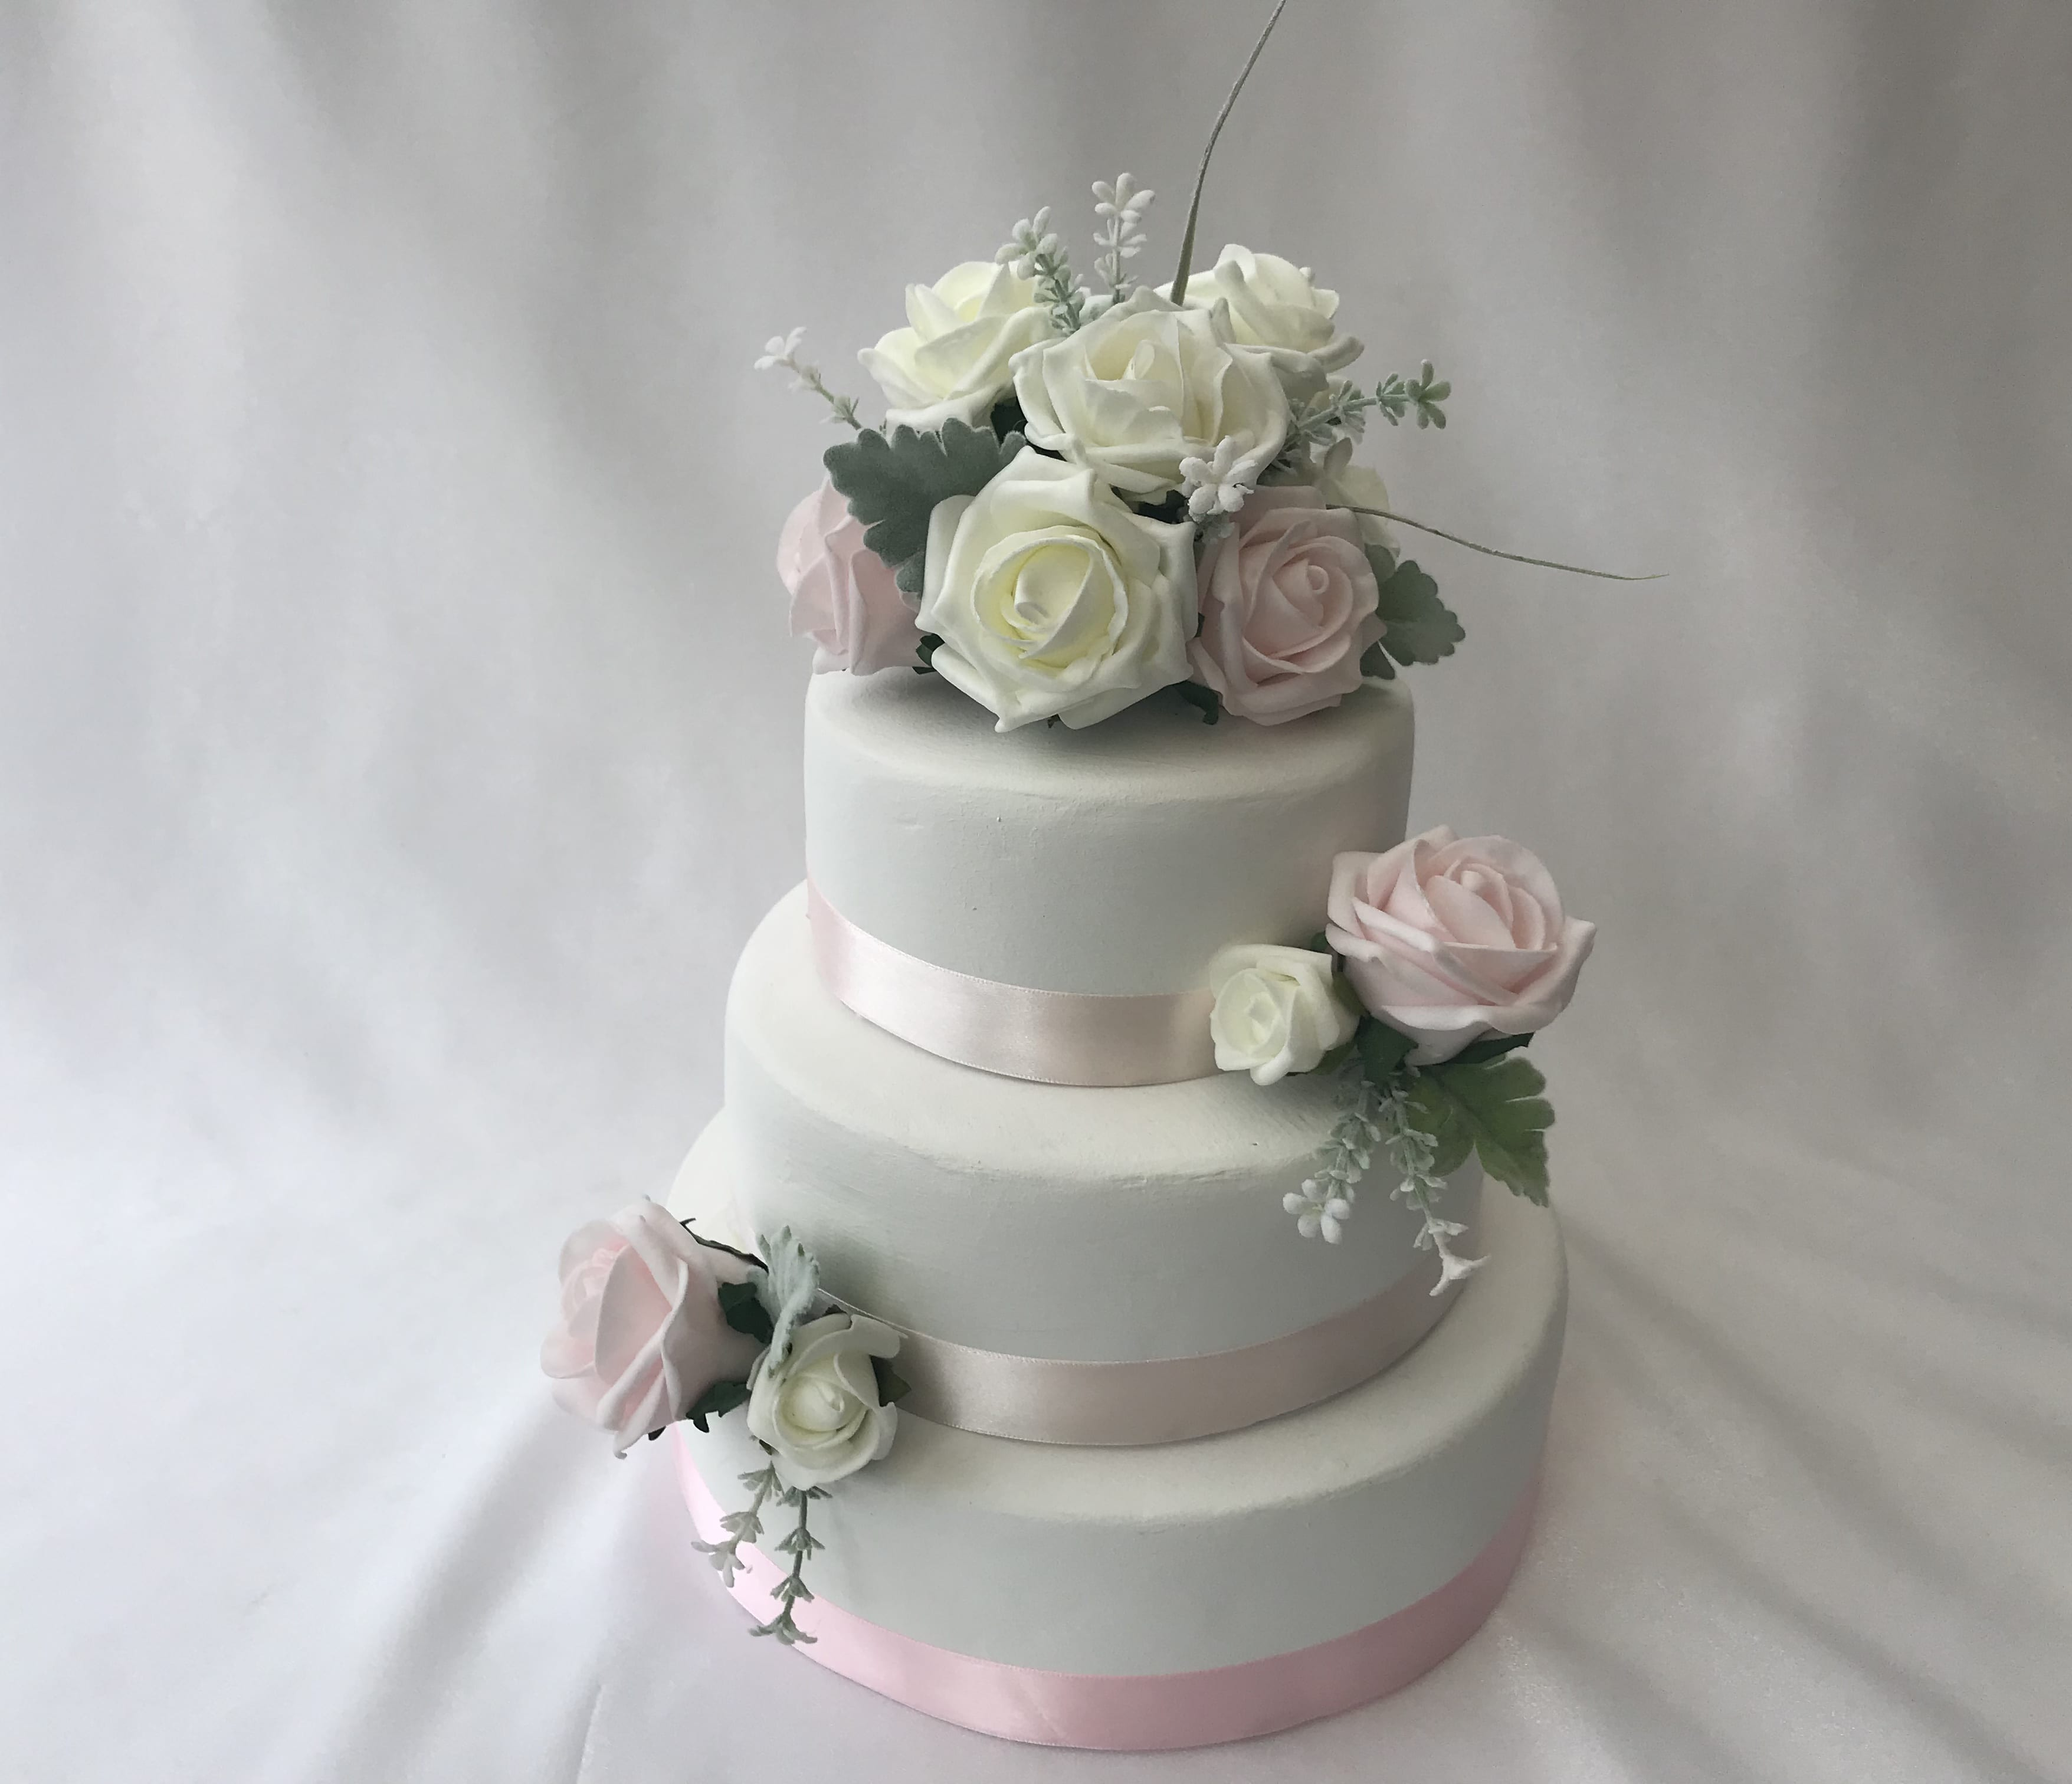 Silk Flower Wedding Cake Toppers: Artificial Wedding Cake Topper Rose